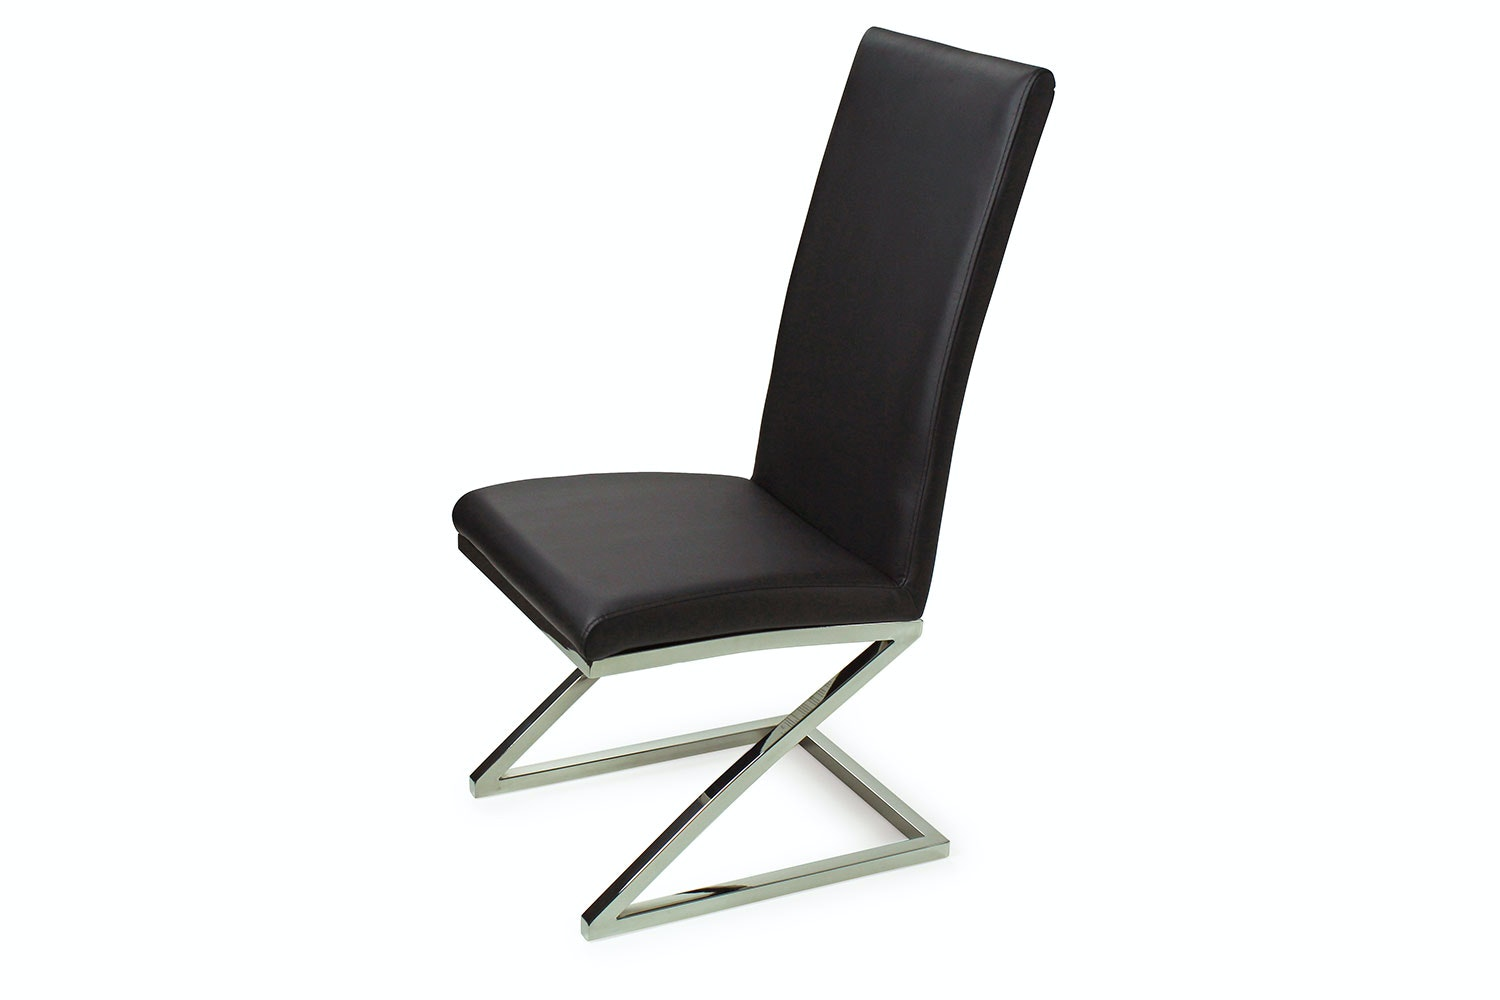 Stix Dining Chair by Debonaire Furniture